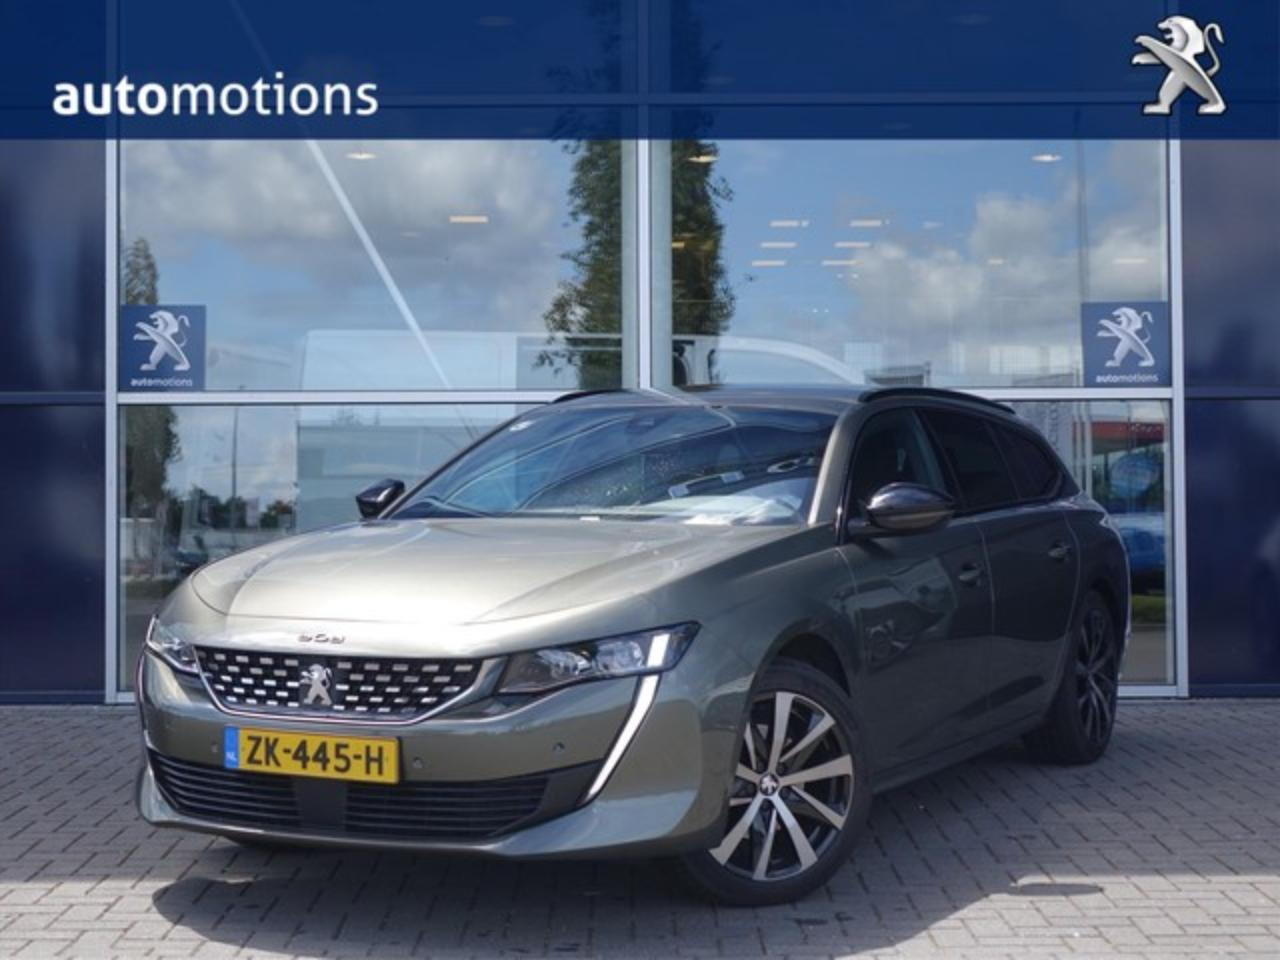 Peugeot 508 Sw 1.6 180pk GT-line EAT8 l Focal l Adapt.Cruise |